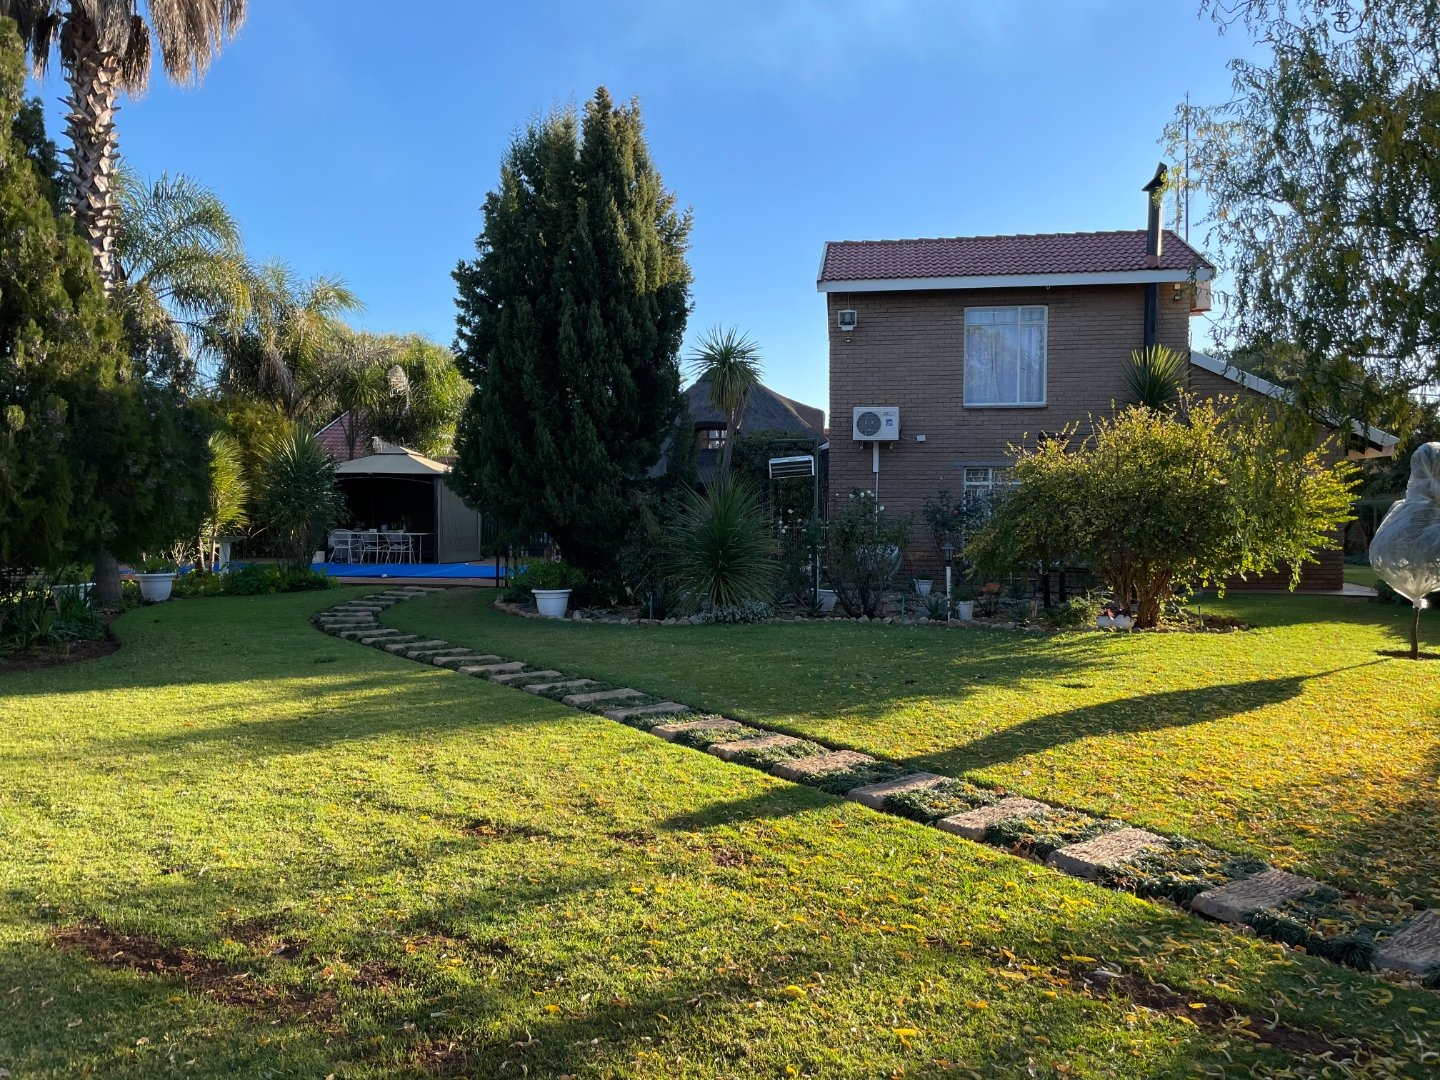 5 Bedroom House For Sale in Stilfontein Ext 4